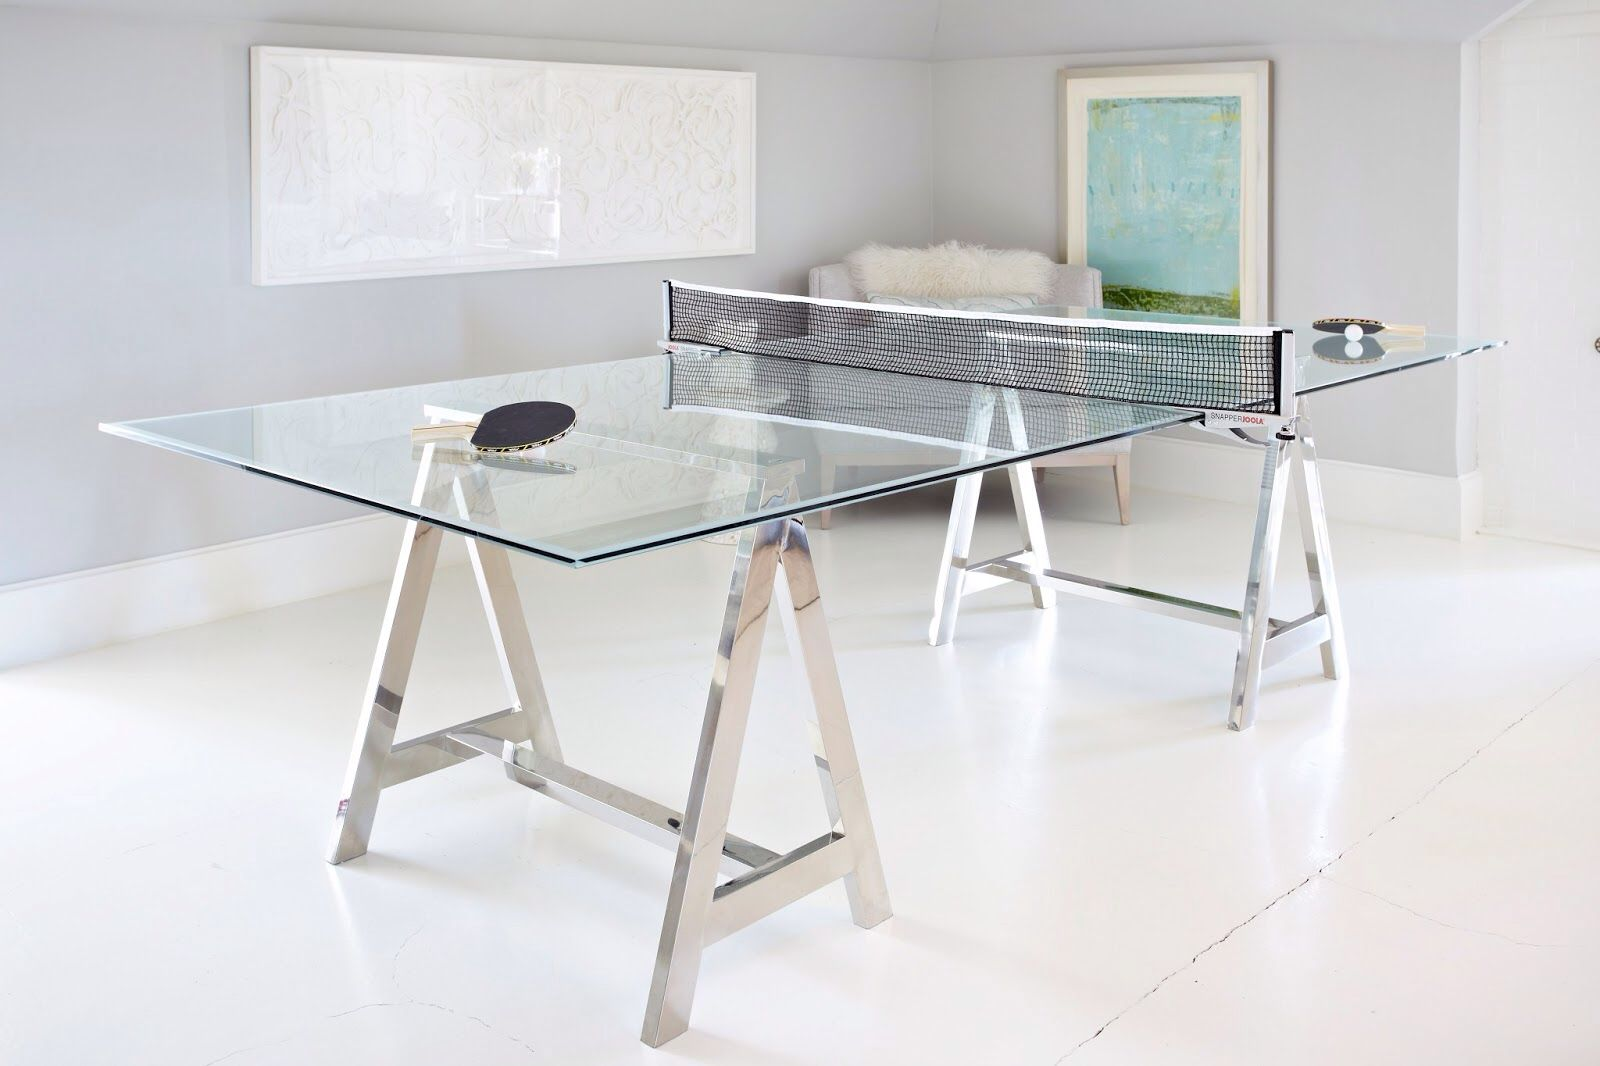 Astonishing Glass Ping Pong Table Interior Design Media Room Design Home Interior And Landscaping Dextoversignezvosmurscom